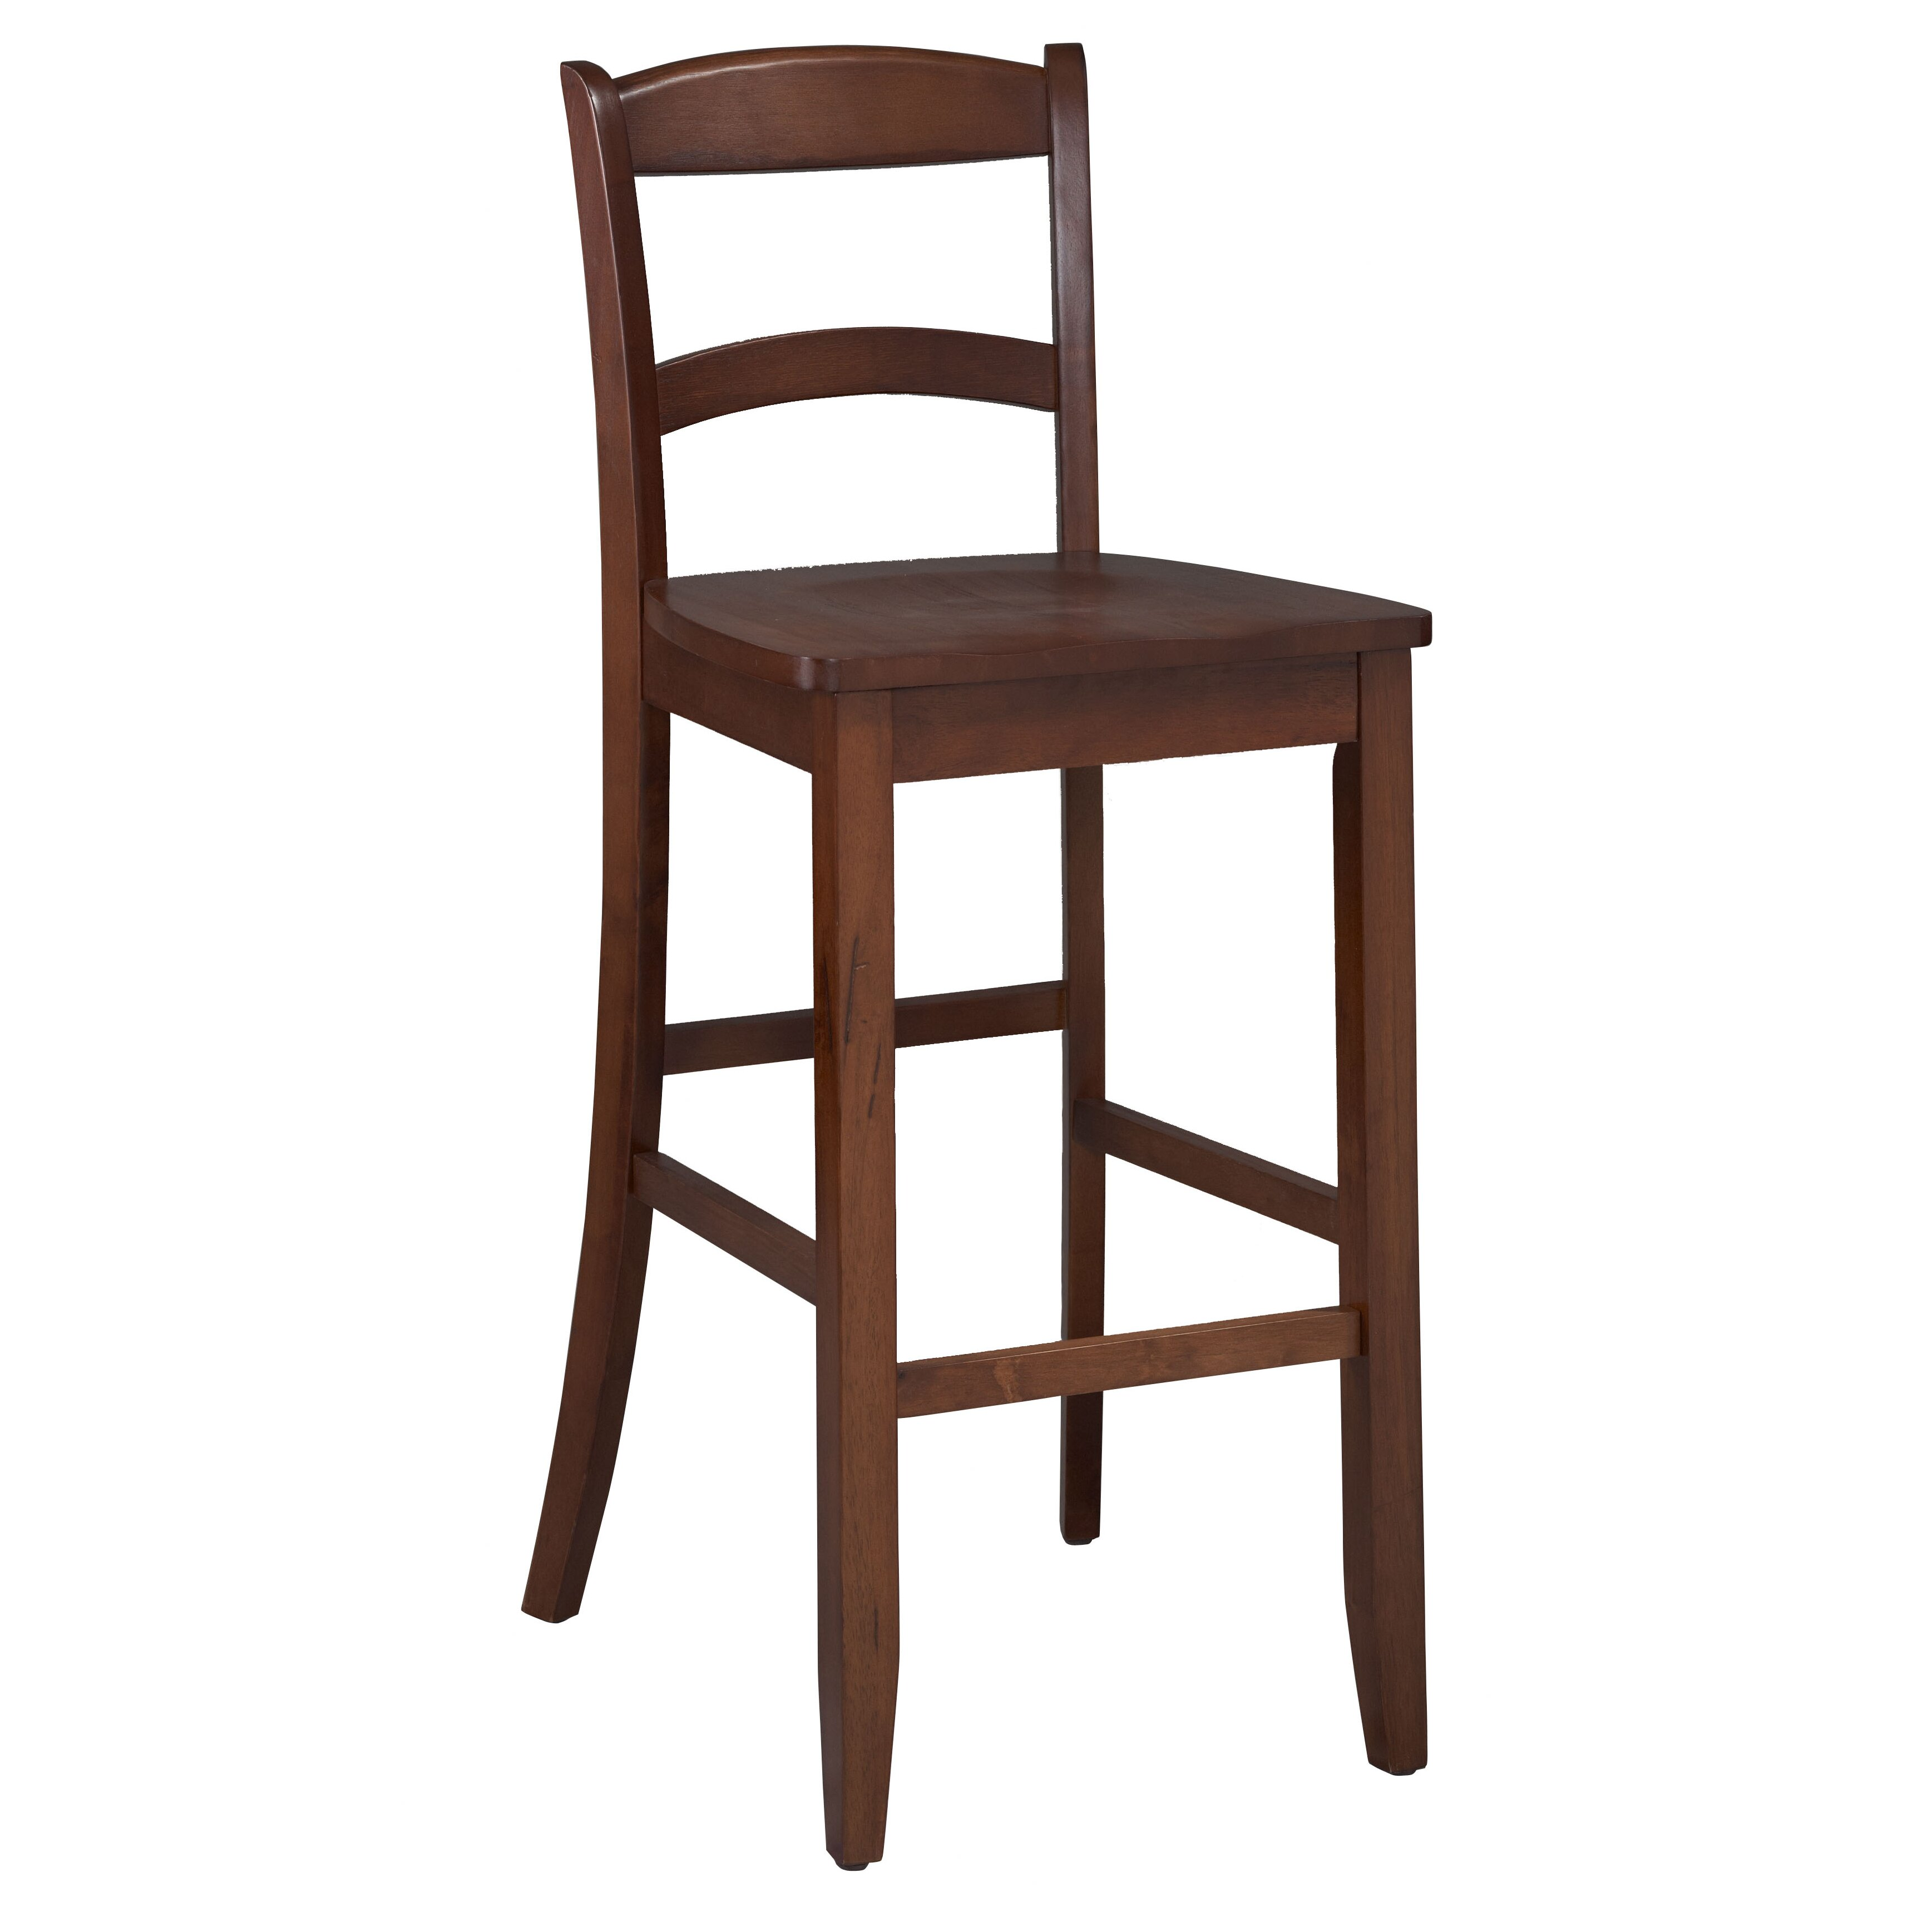 Linon Torino 24 Quot Swivel Bar Stool Amp Reviews Wayfair Ca